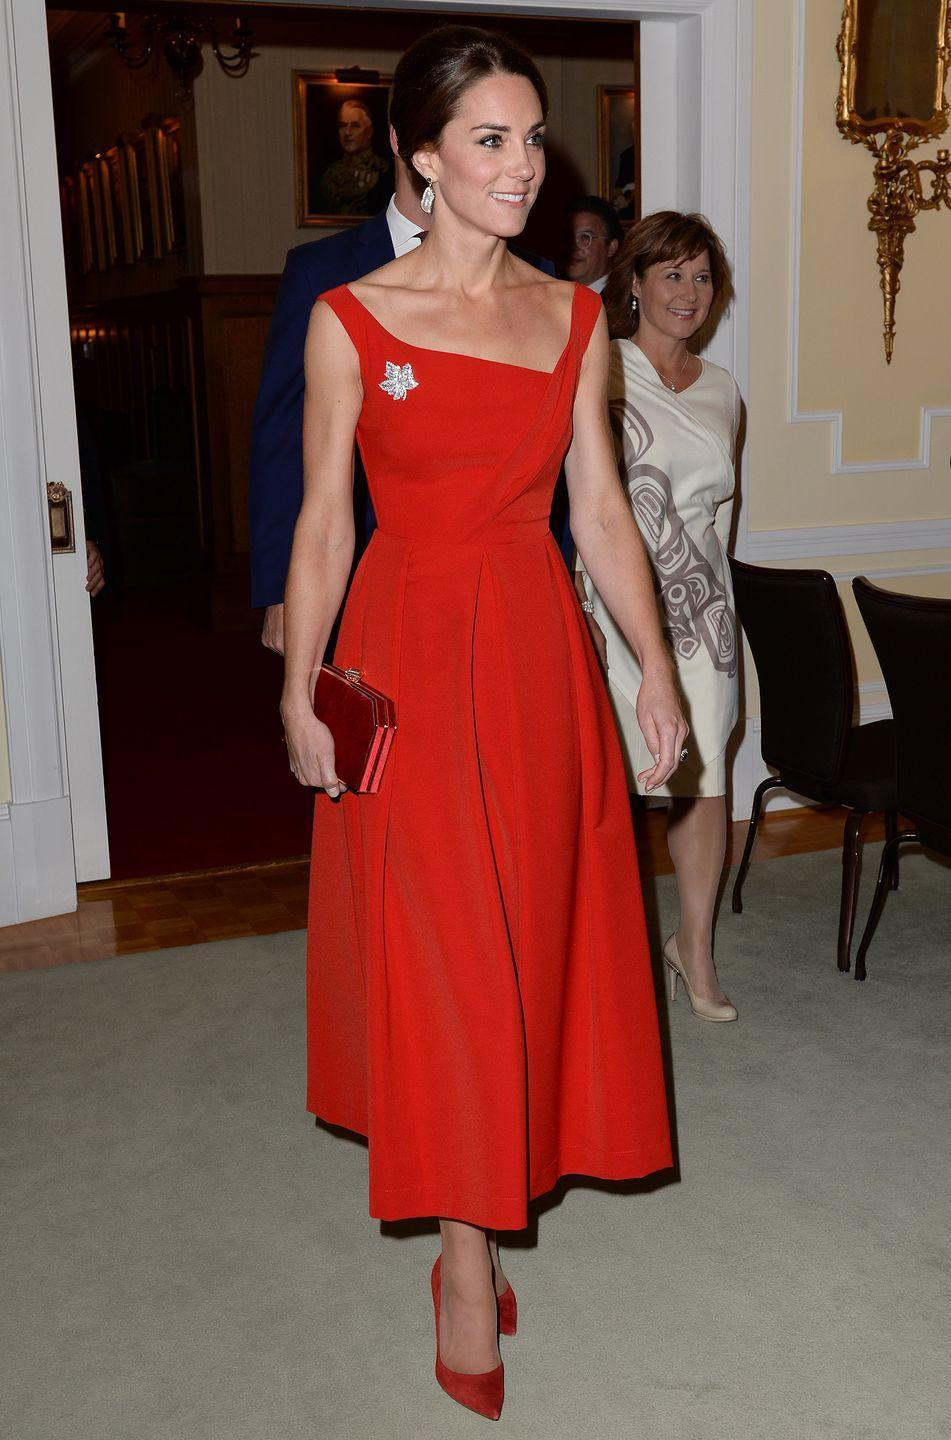 <p>As you may have noticed by now, Kate and Meghan aren't afraid to rock bold hues. Example: Kate wore red while in Canada on an official visit in 2016, perhaps as an homage to their flag. </p>